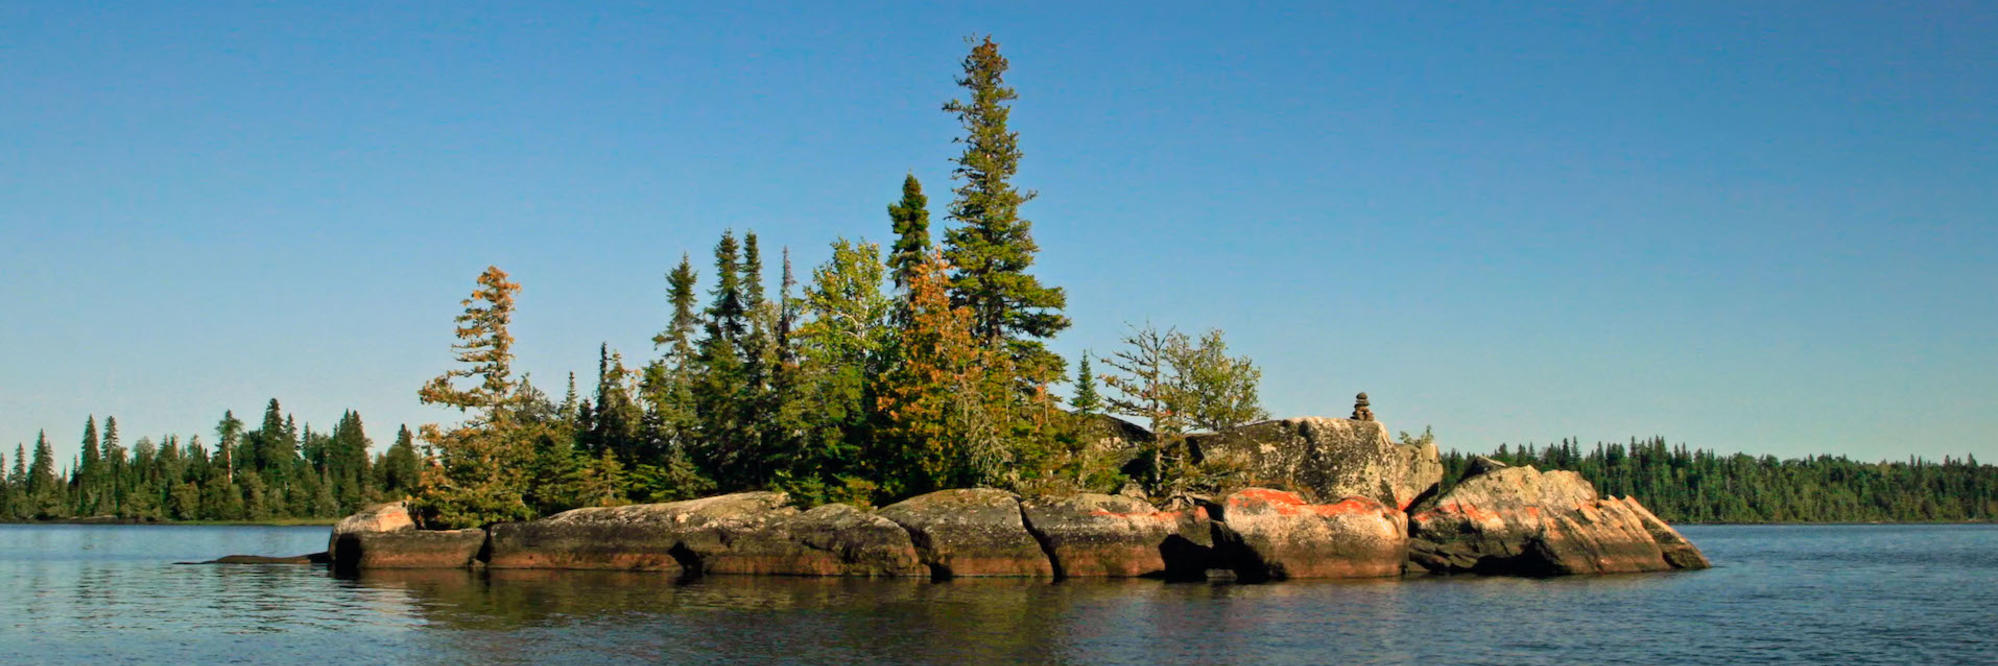 Small rock island with coniferous trees.